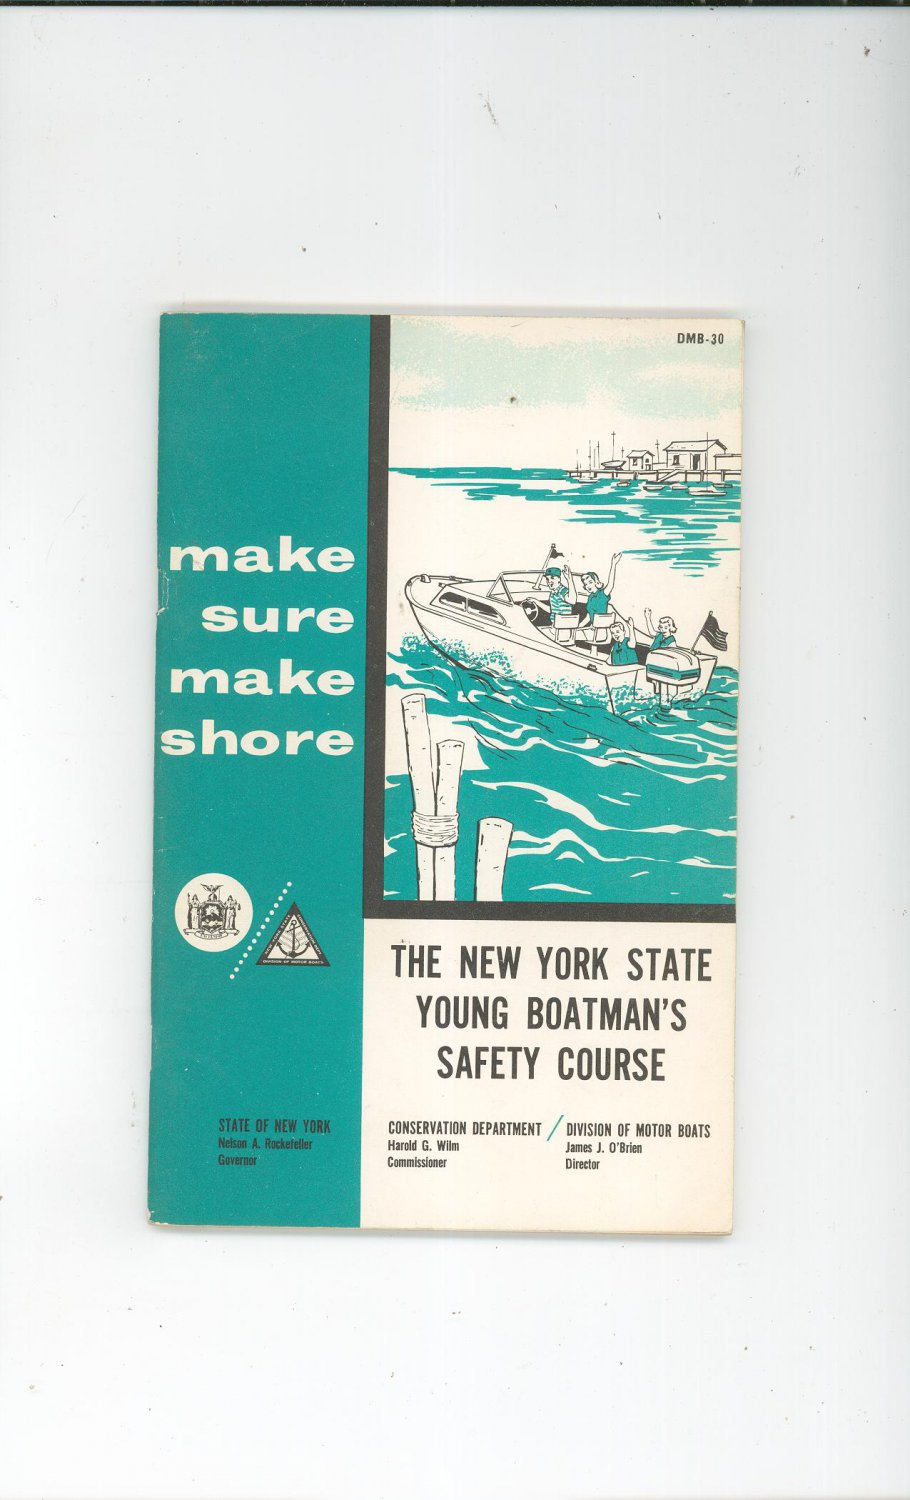 Vintage New York State Young Boatman's Safety Course Rockefeller Governor